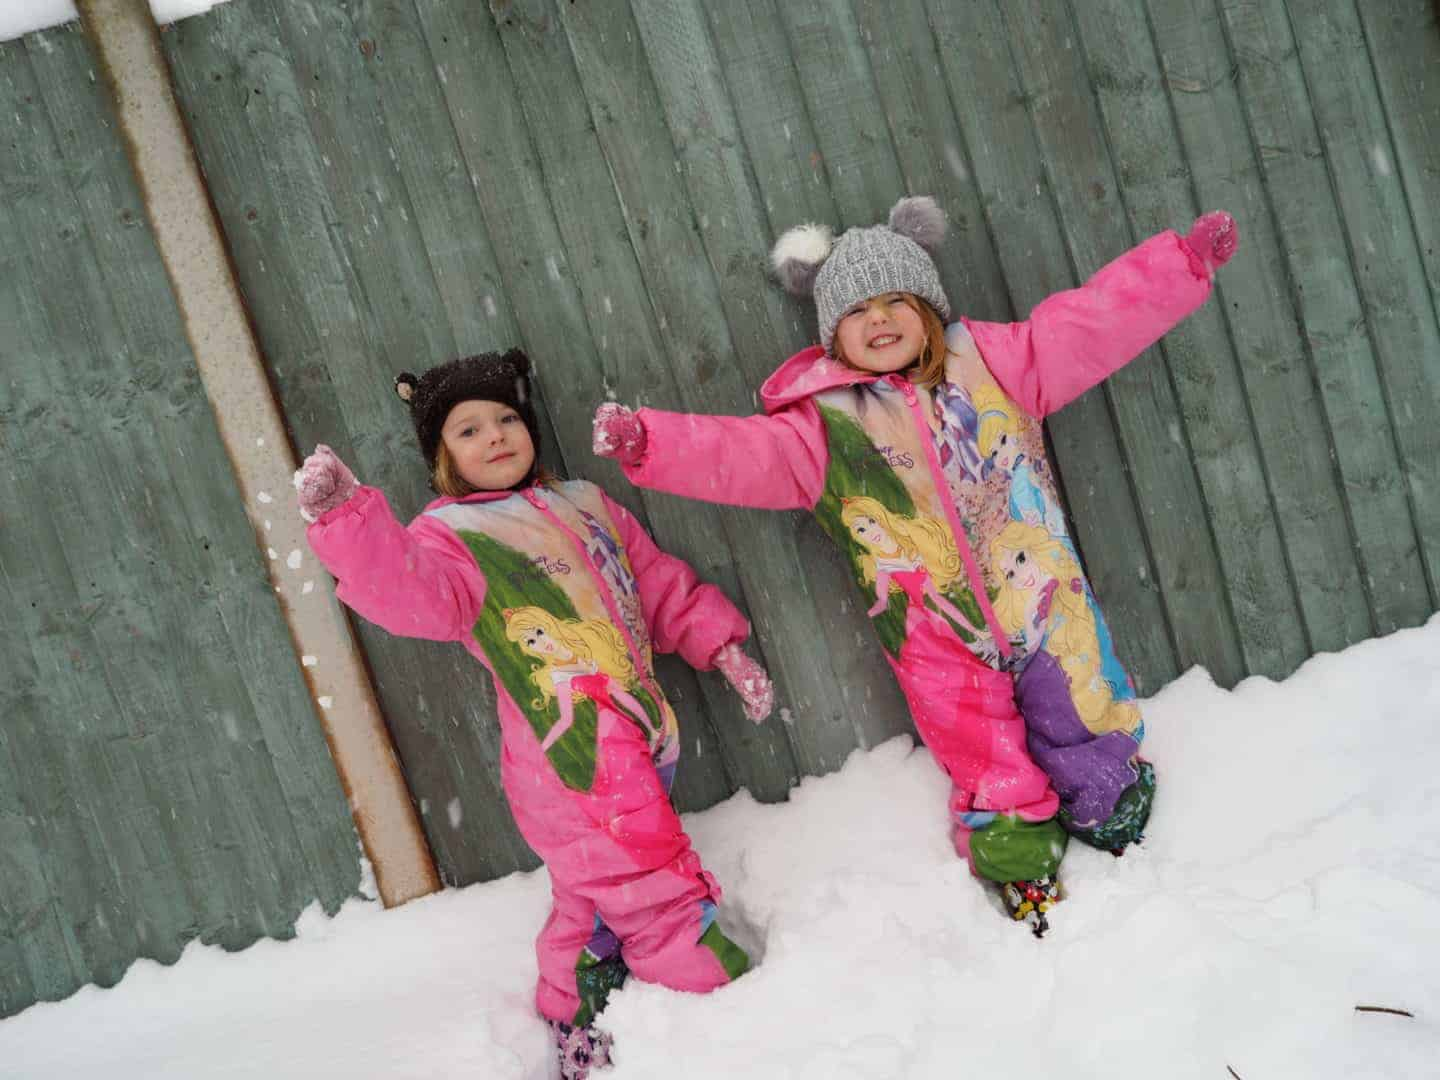 Birthdays, Breaking Up and SO MUCH SNOW! #LittleLoves